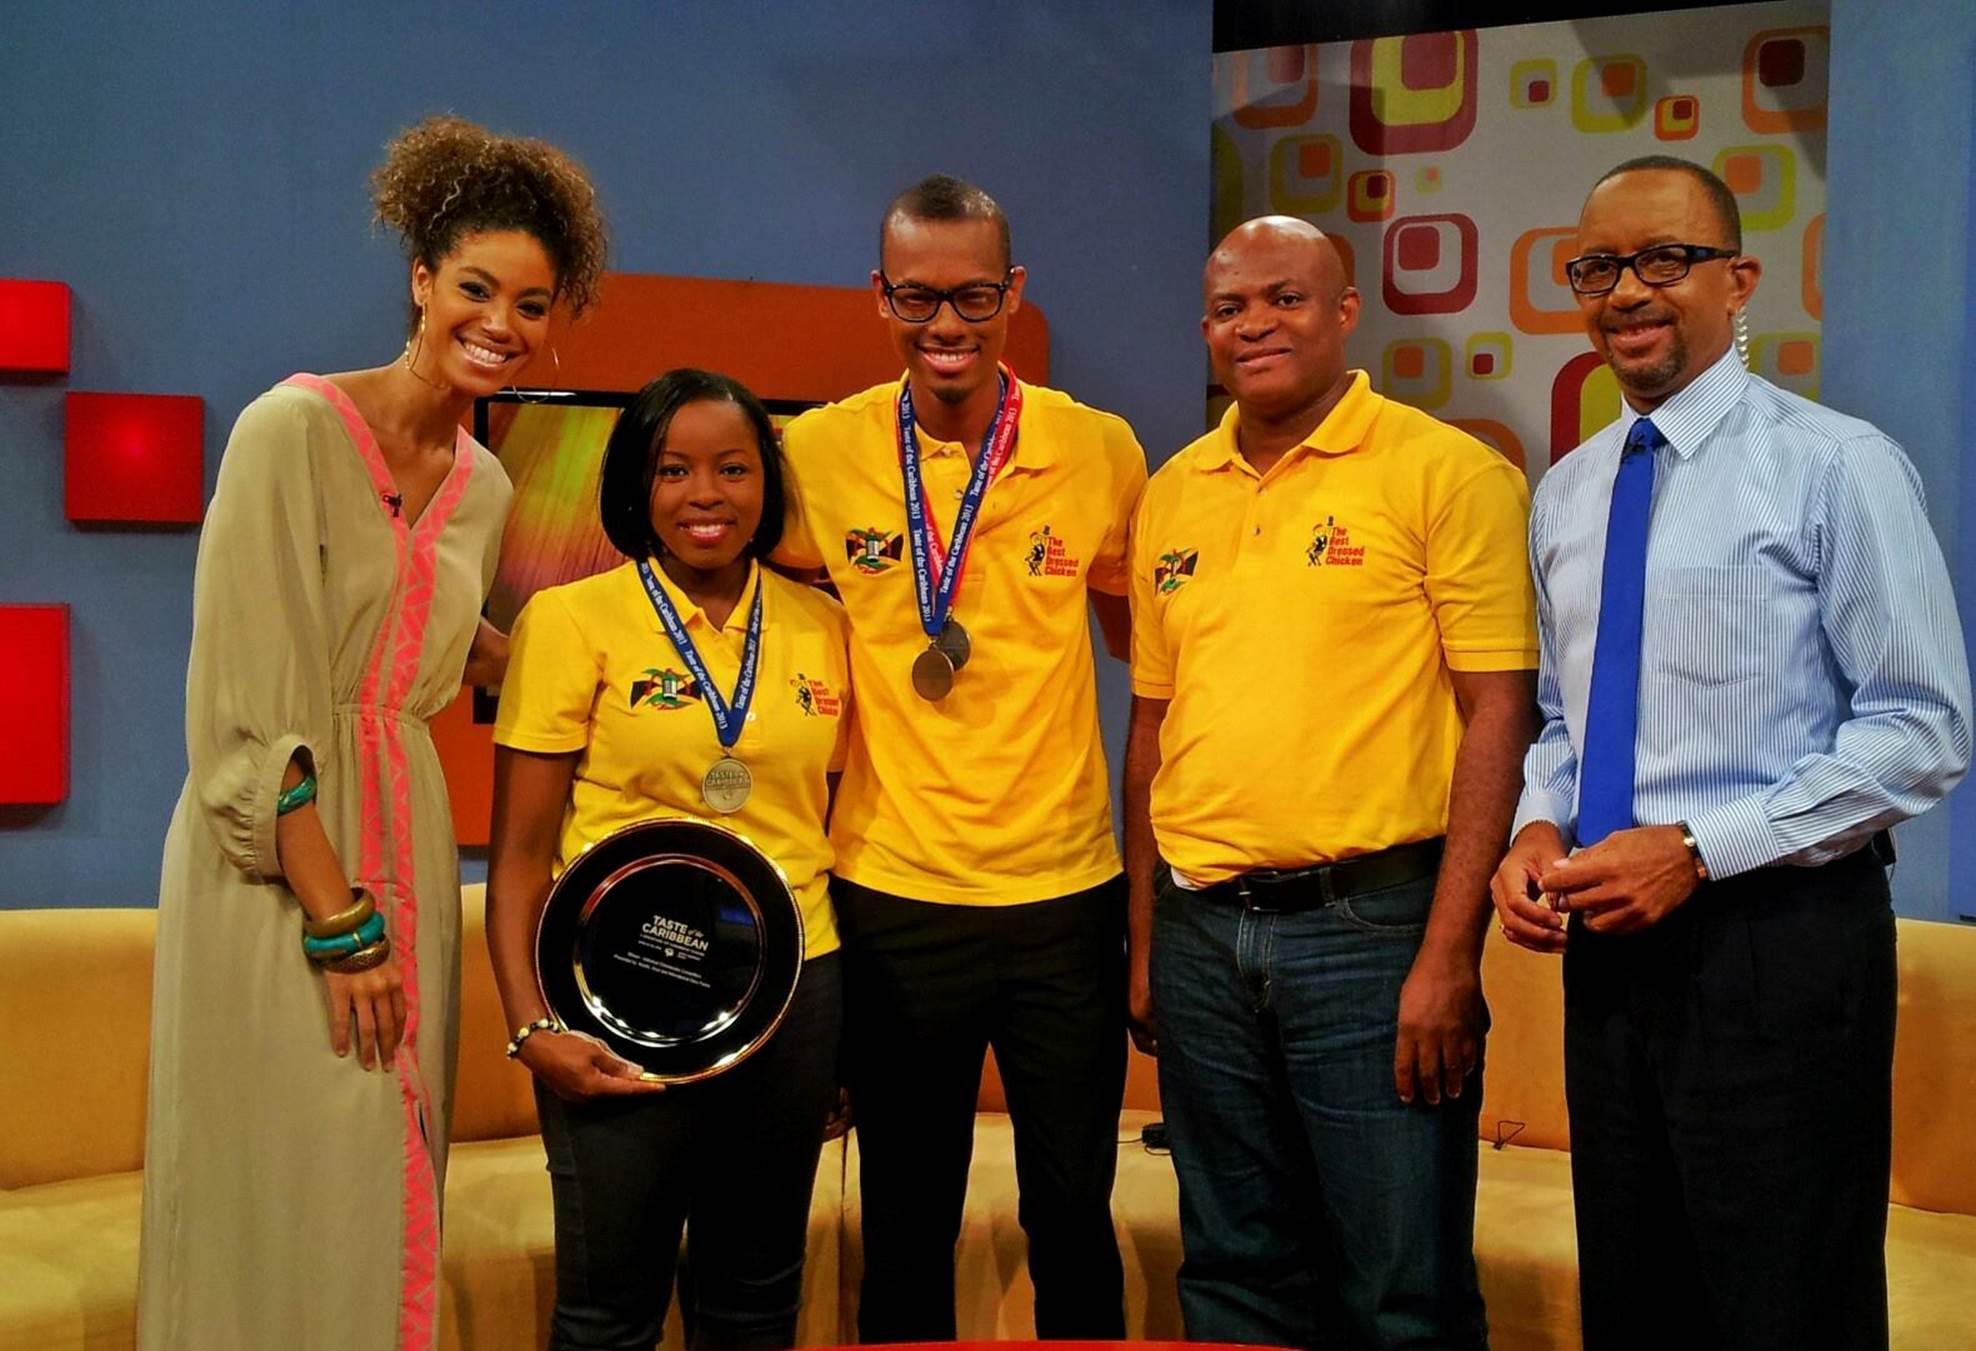 Teresa Clarke and her Jamaican team receive awaed